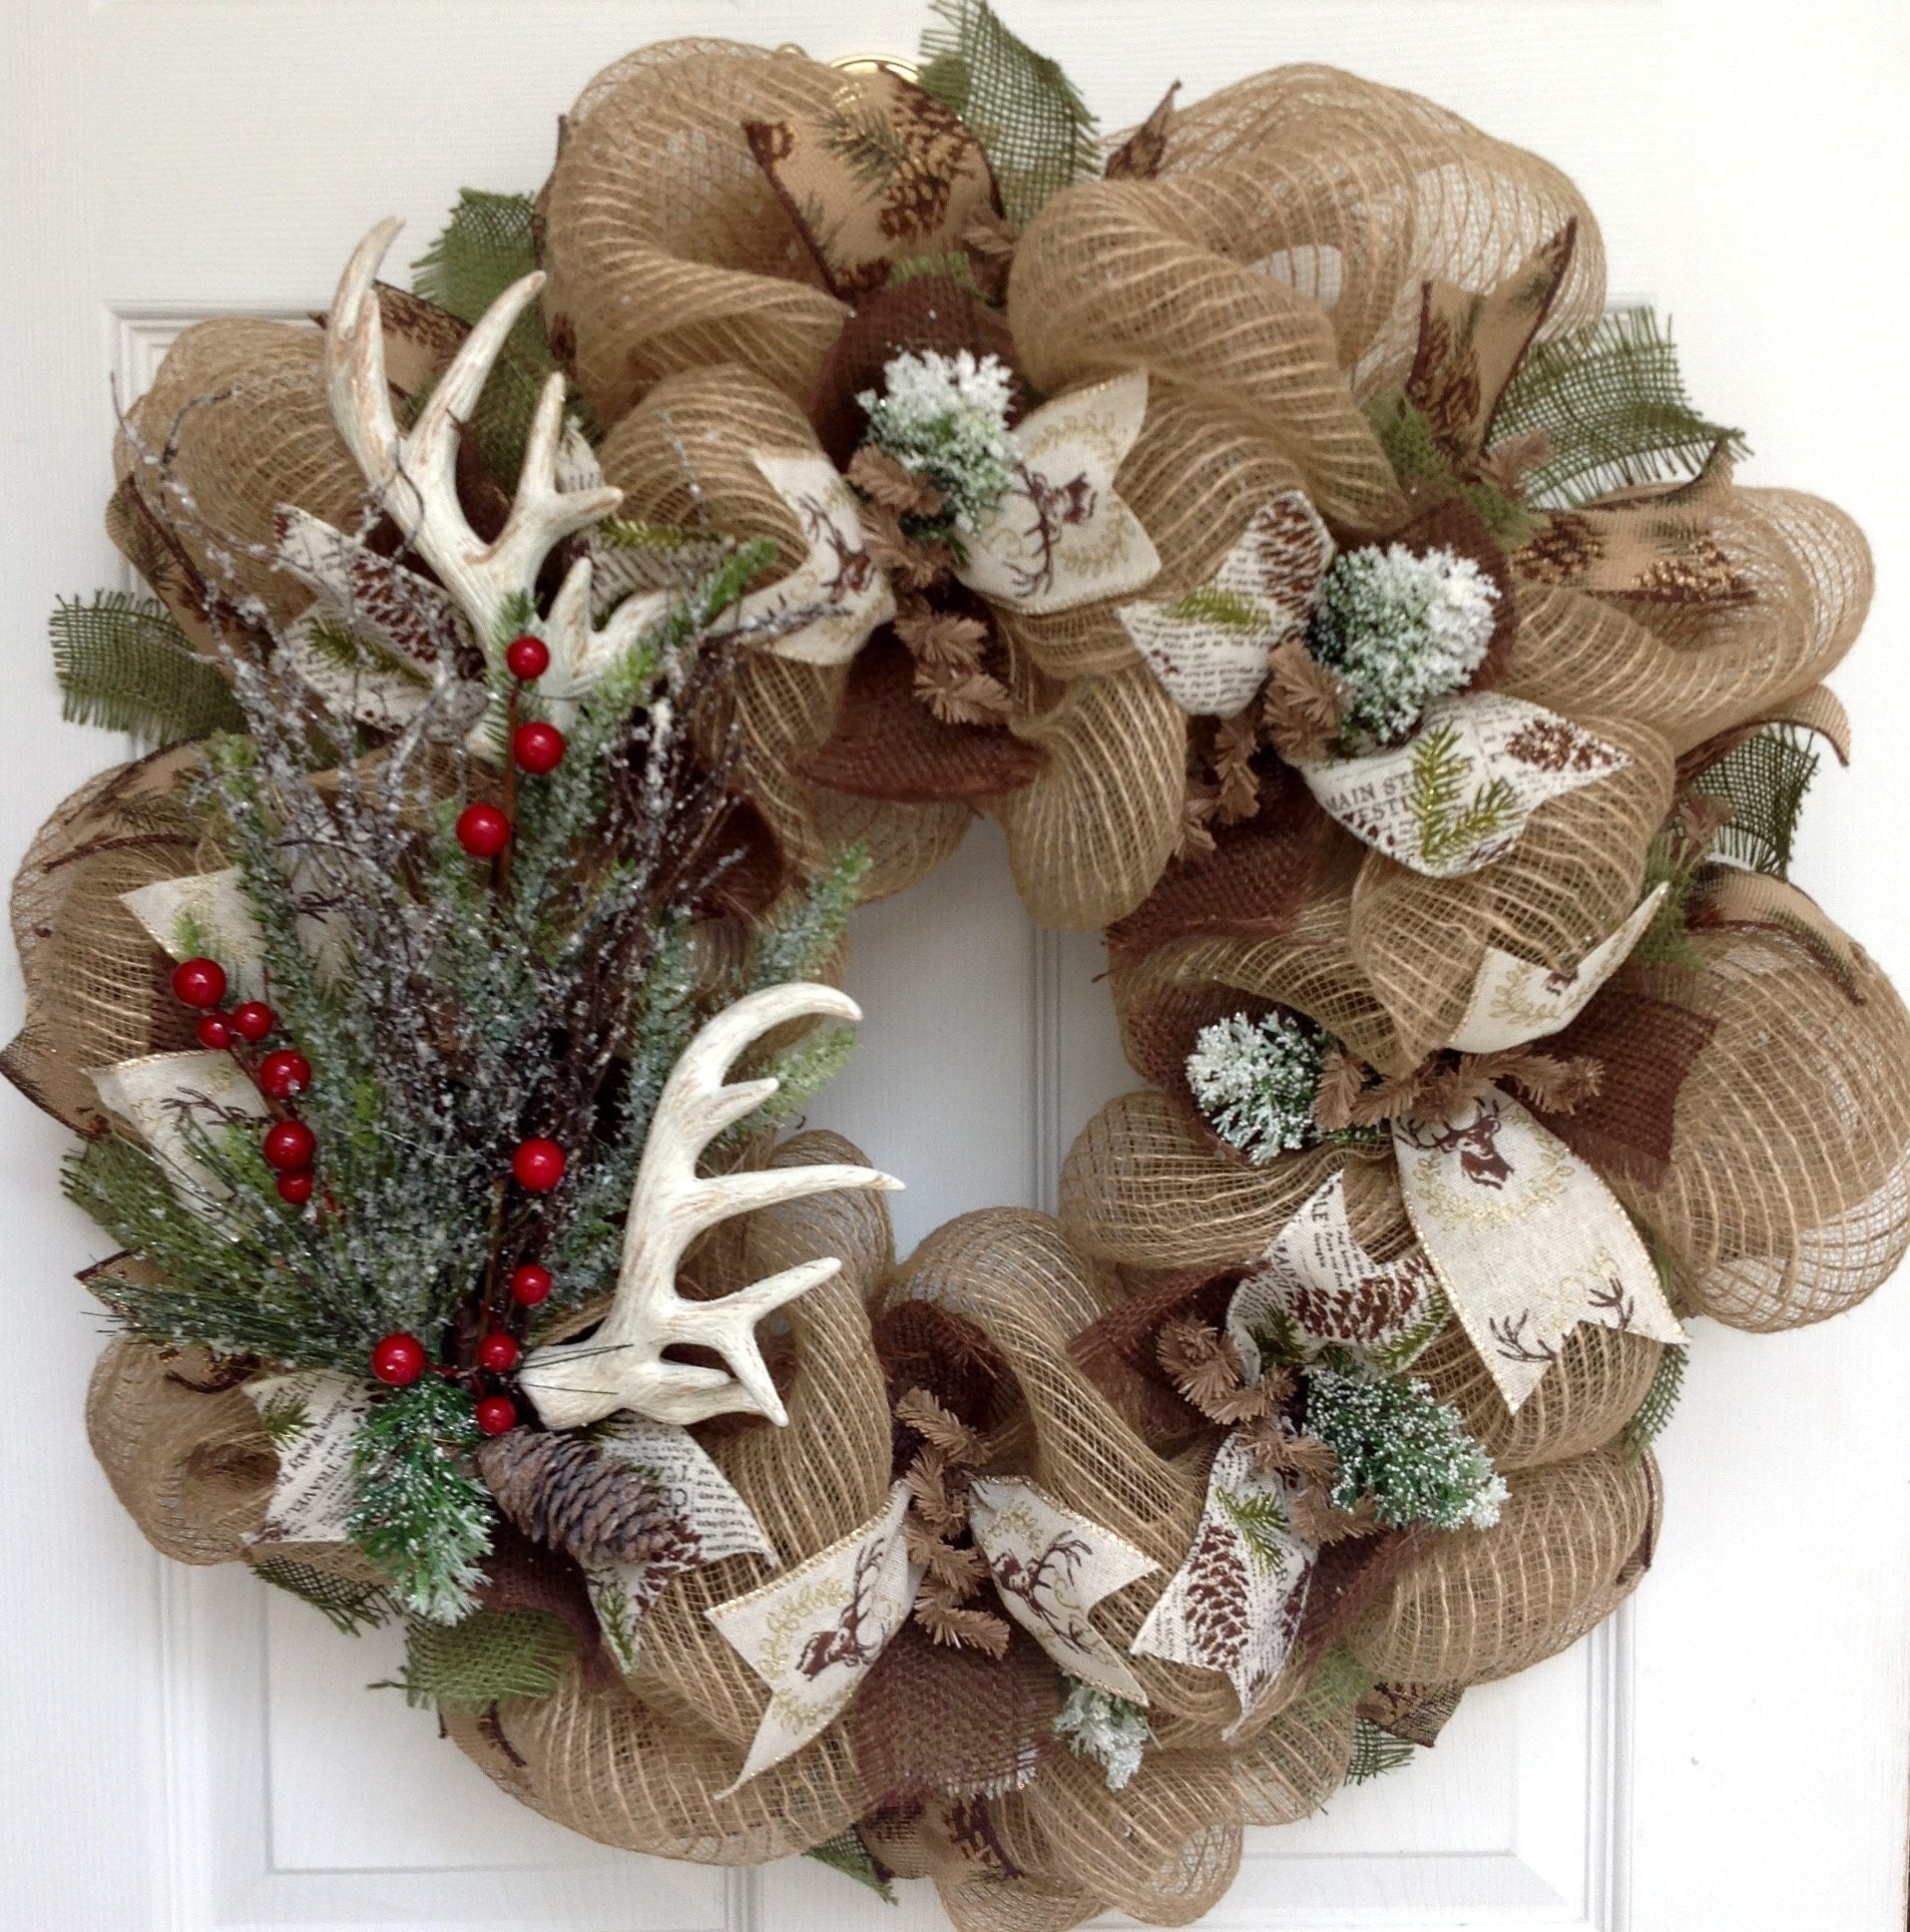 Deer-Antlers-Winter-Holiday-Wreath-With-Iced-Greenery-Handmade-Deco-Mesh